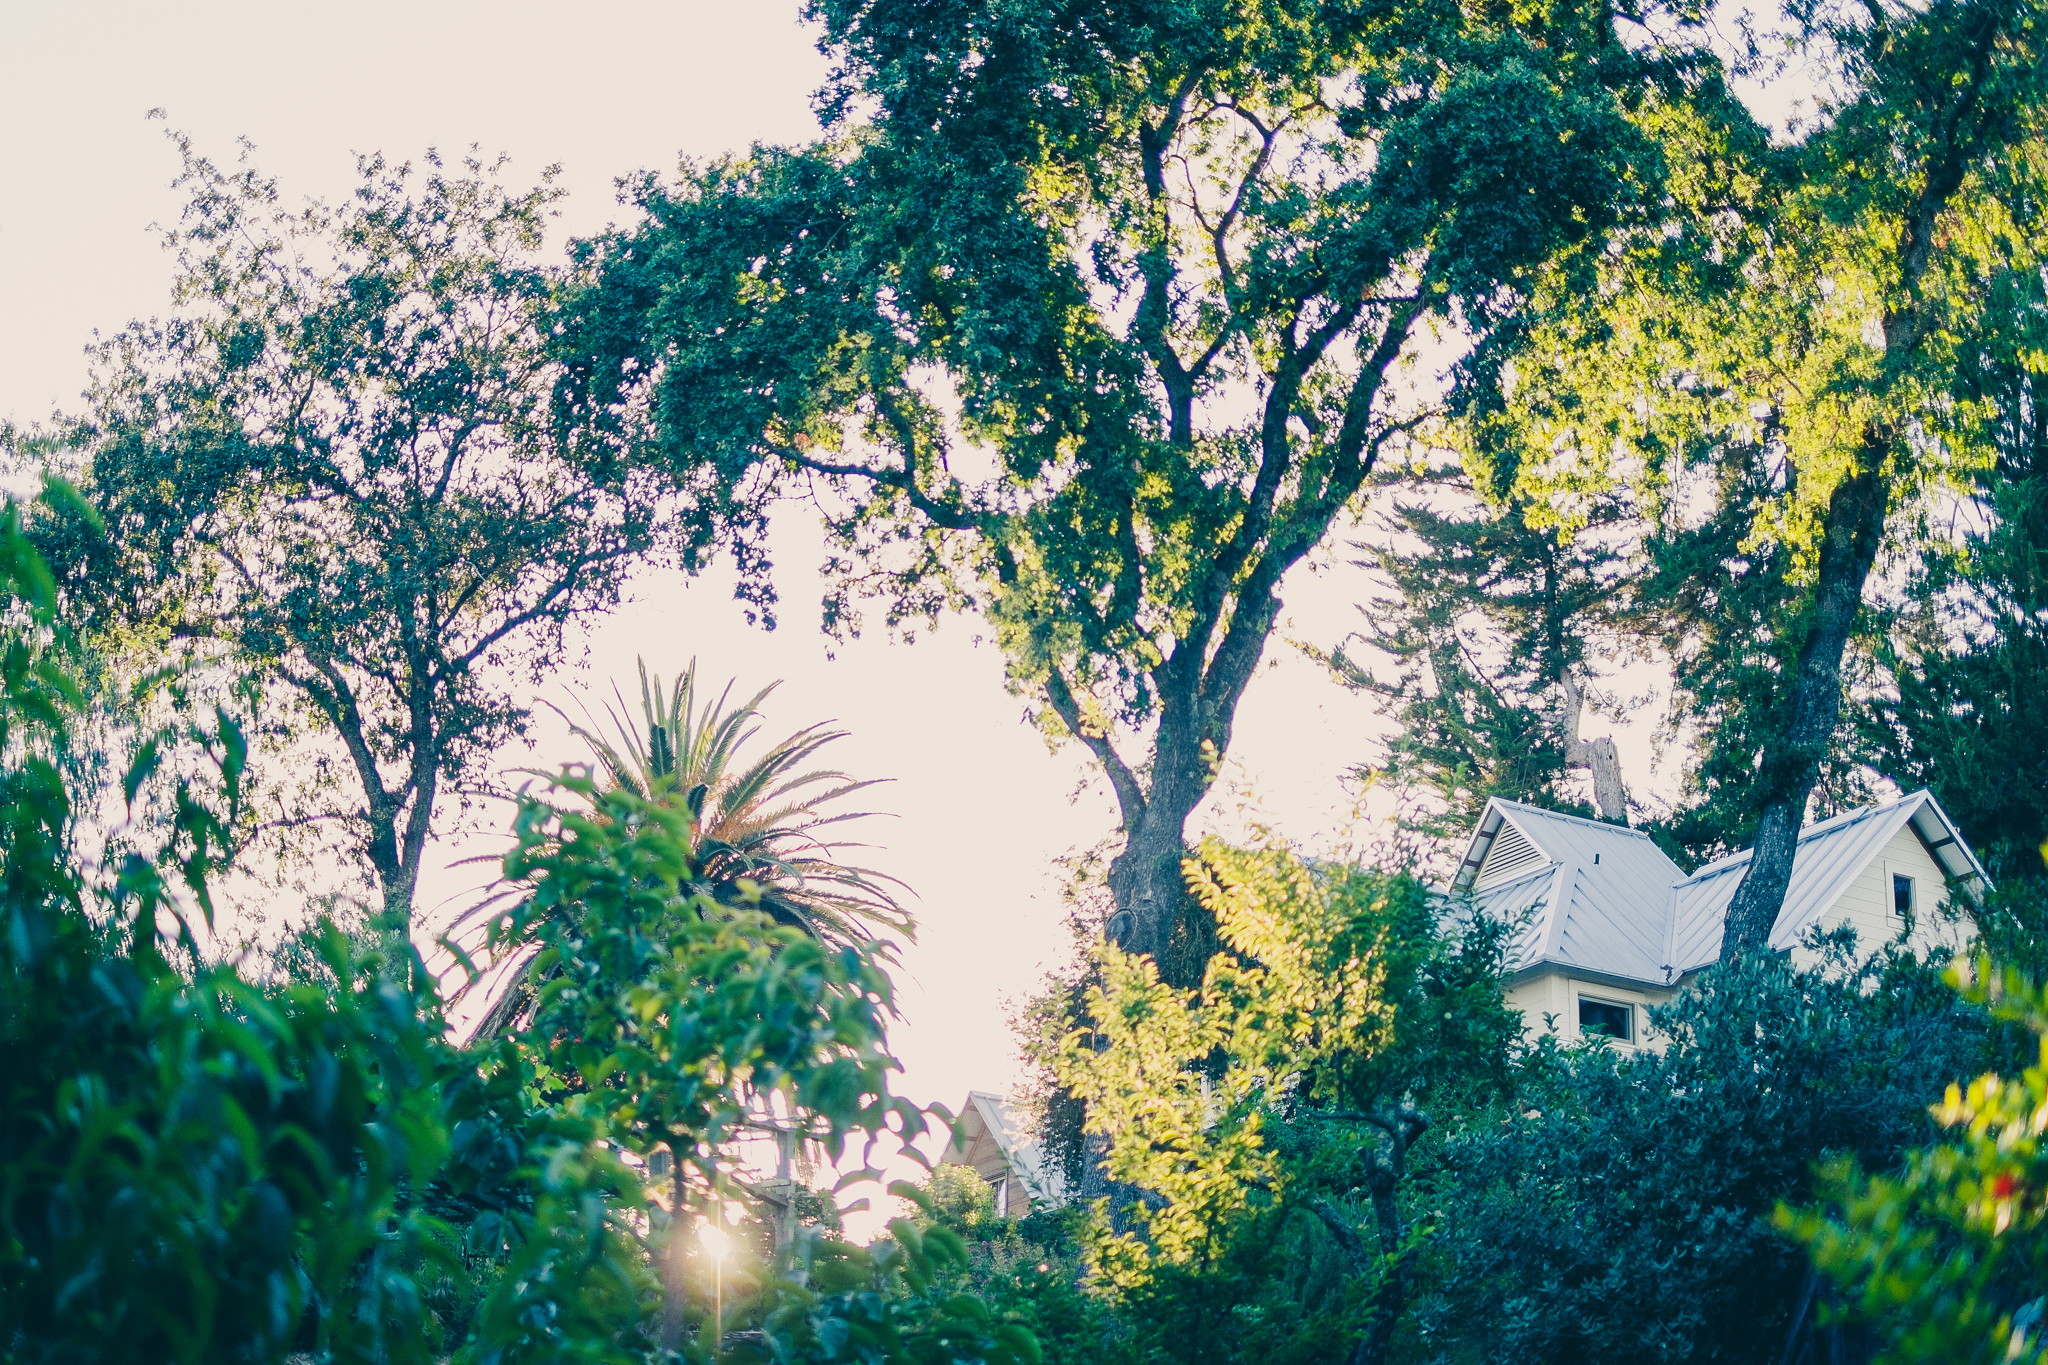 The magic hour overlooking the neighbor's trees